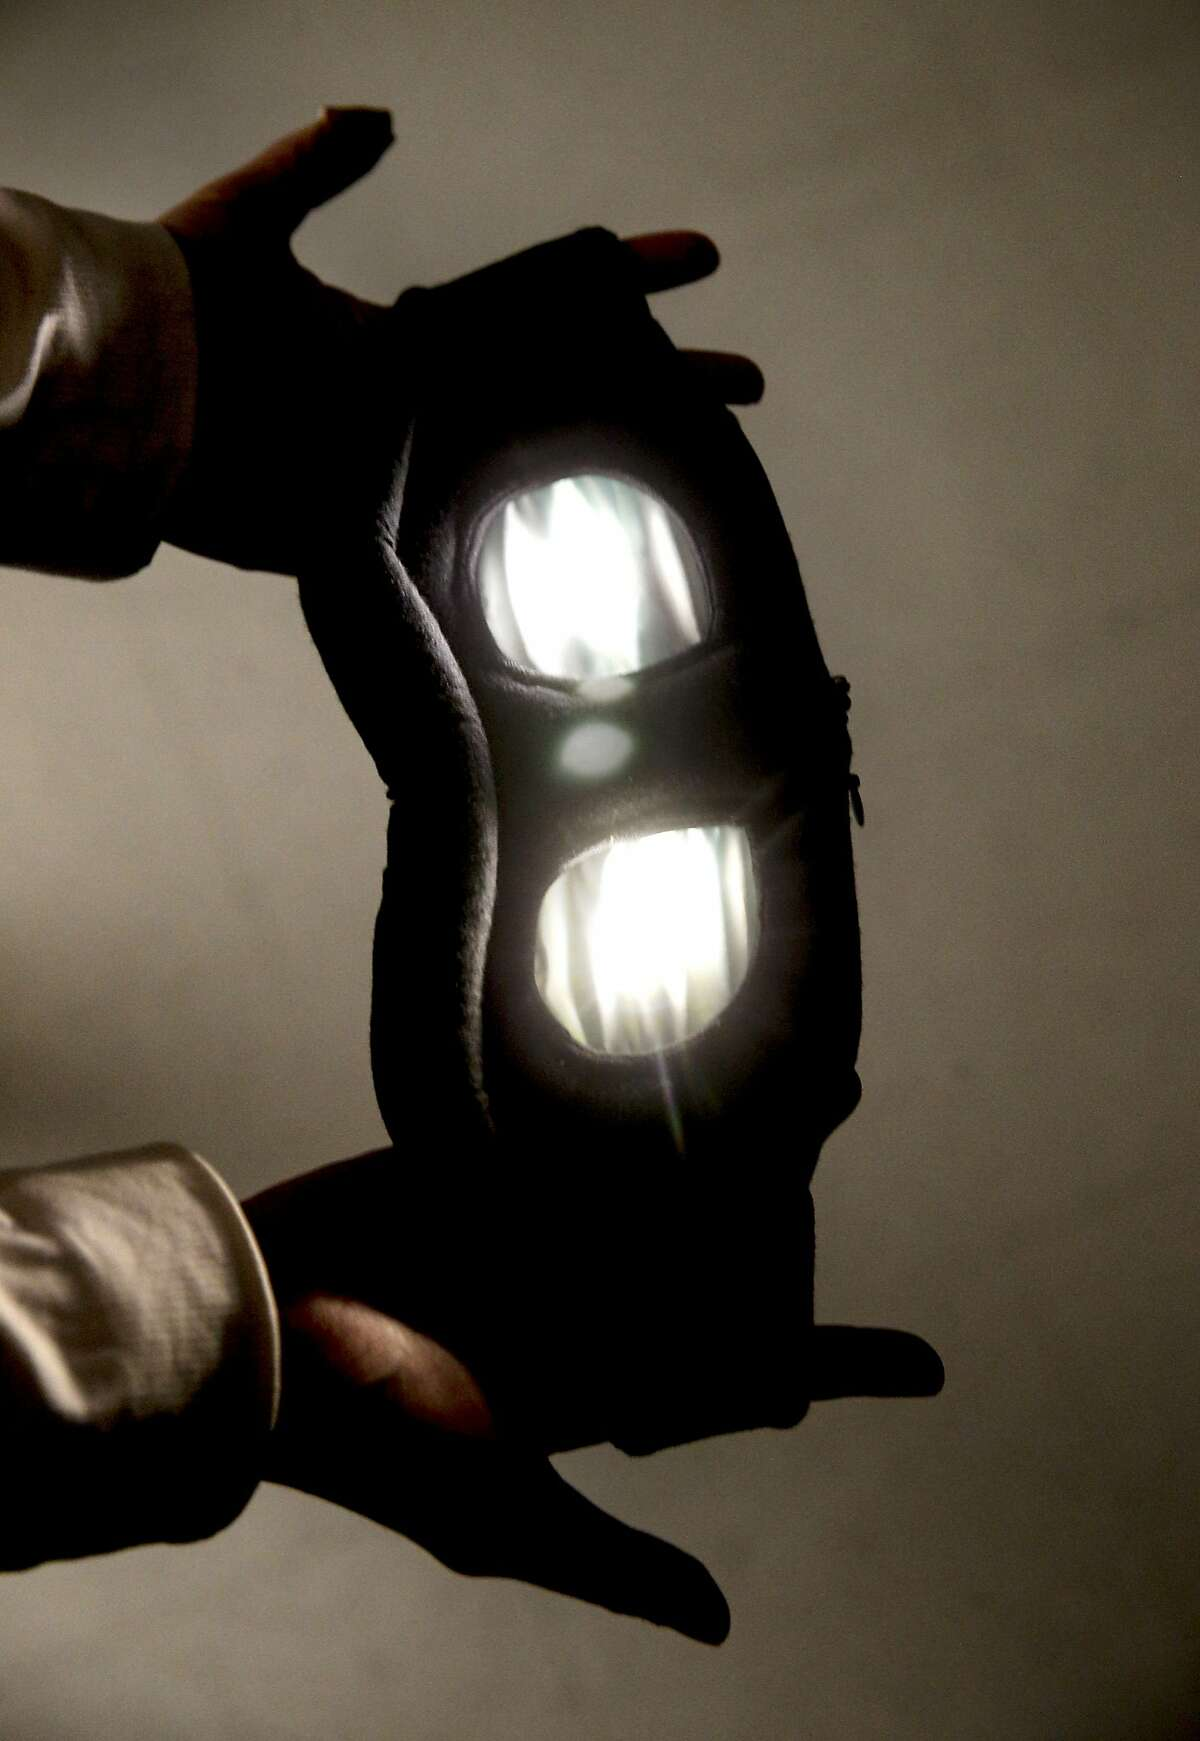 The mask's LED lights are controlled by a smartphone app.